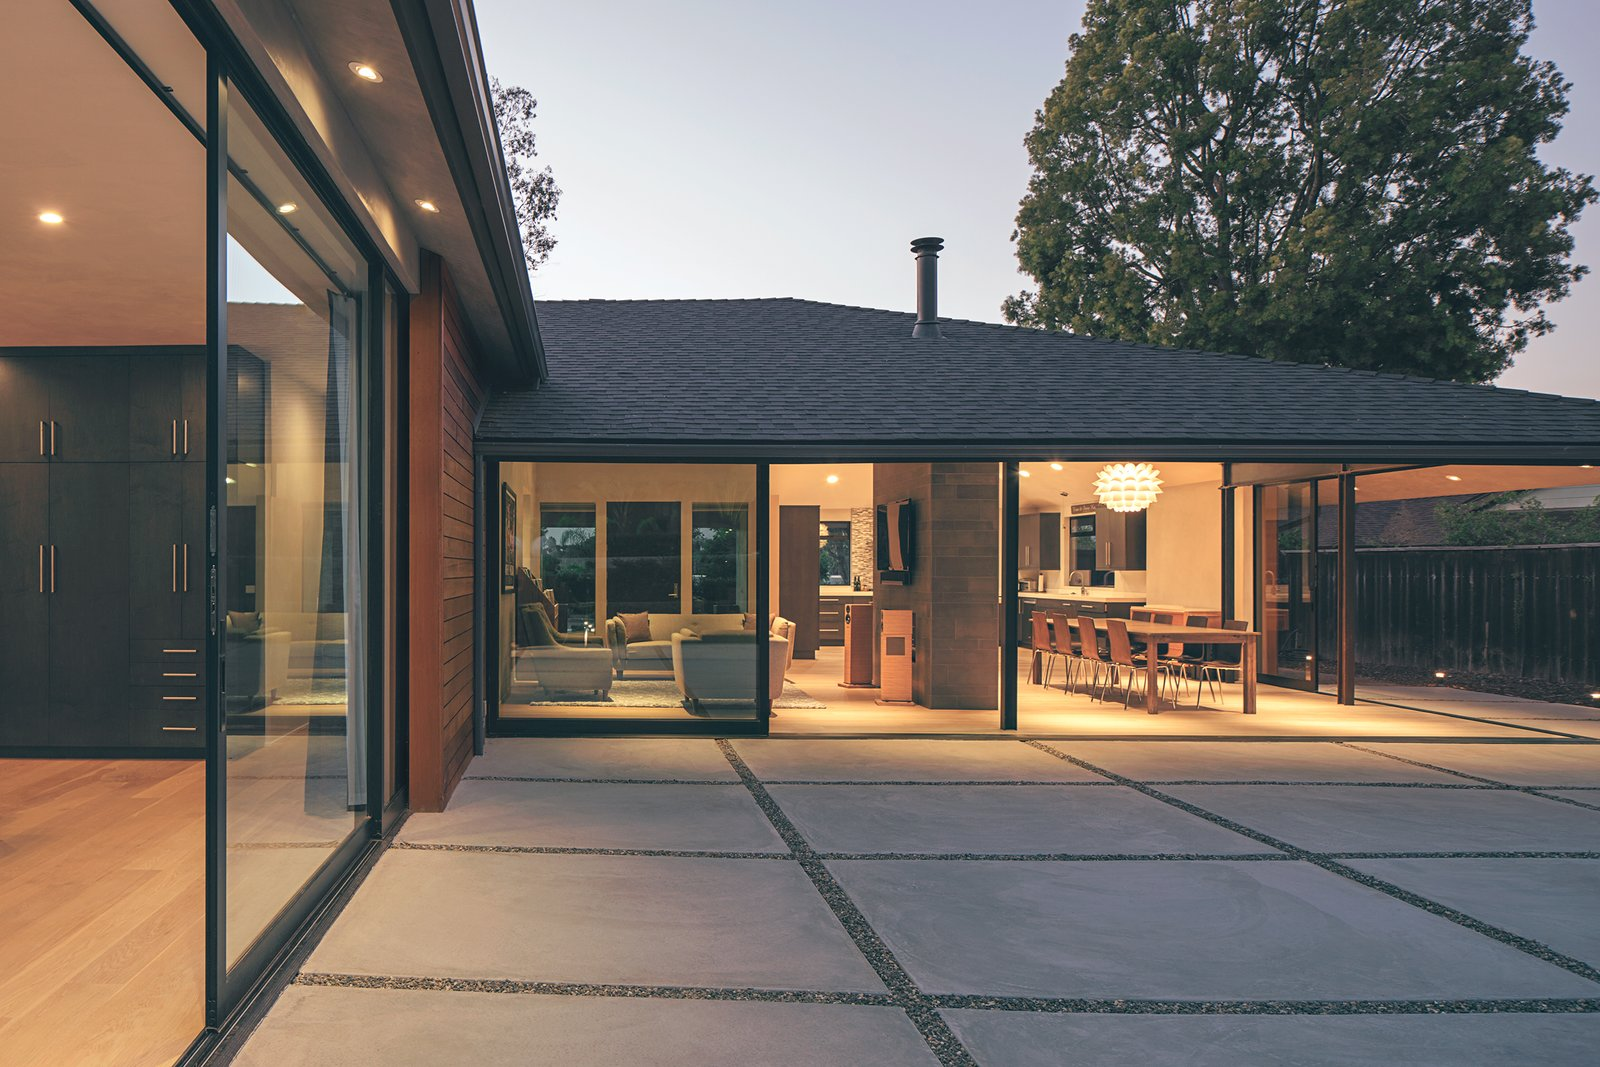 House Building Type, Windows, and Sliding Window Type Indoor-outdoor living exemplified in Santa Barbara.  A Perfect Match